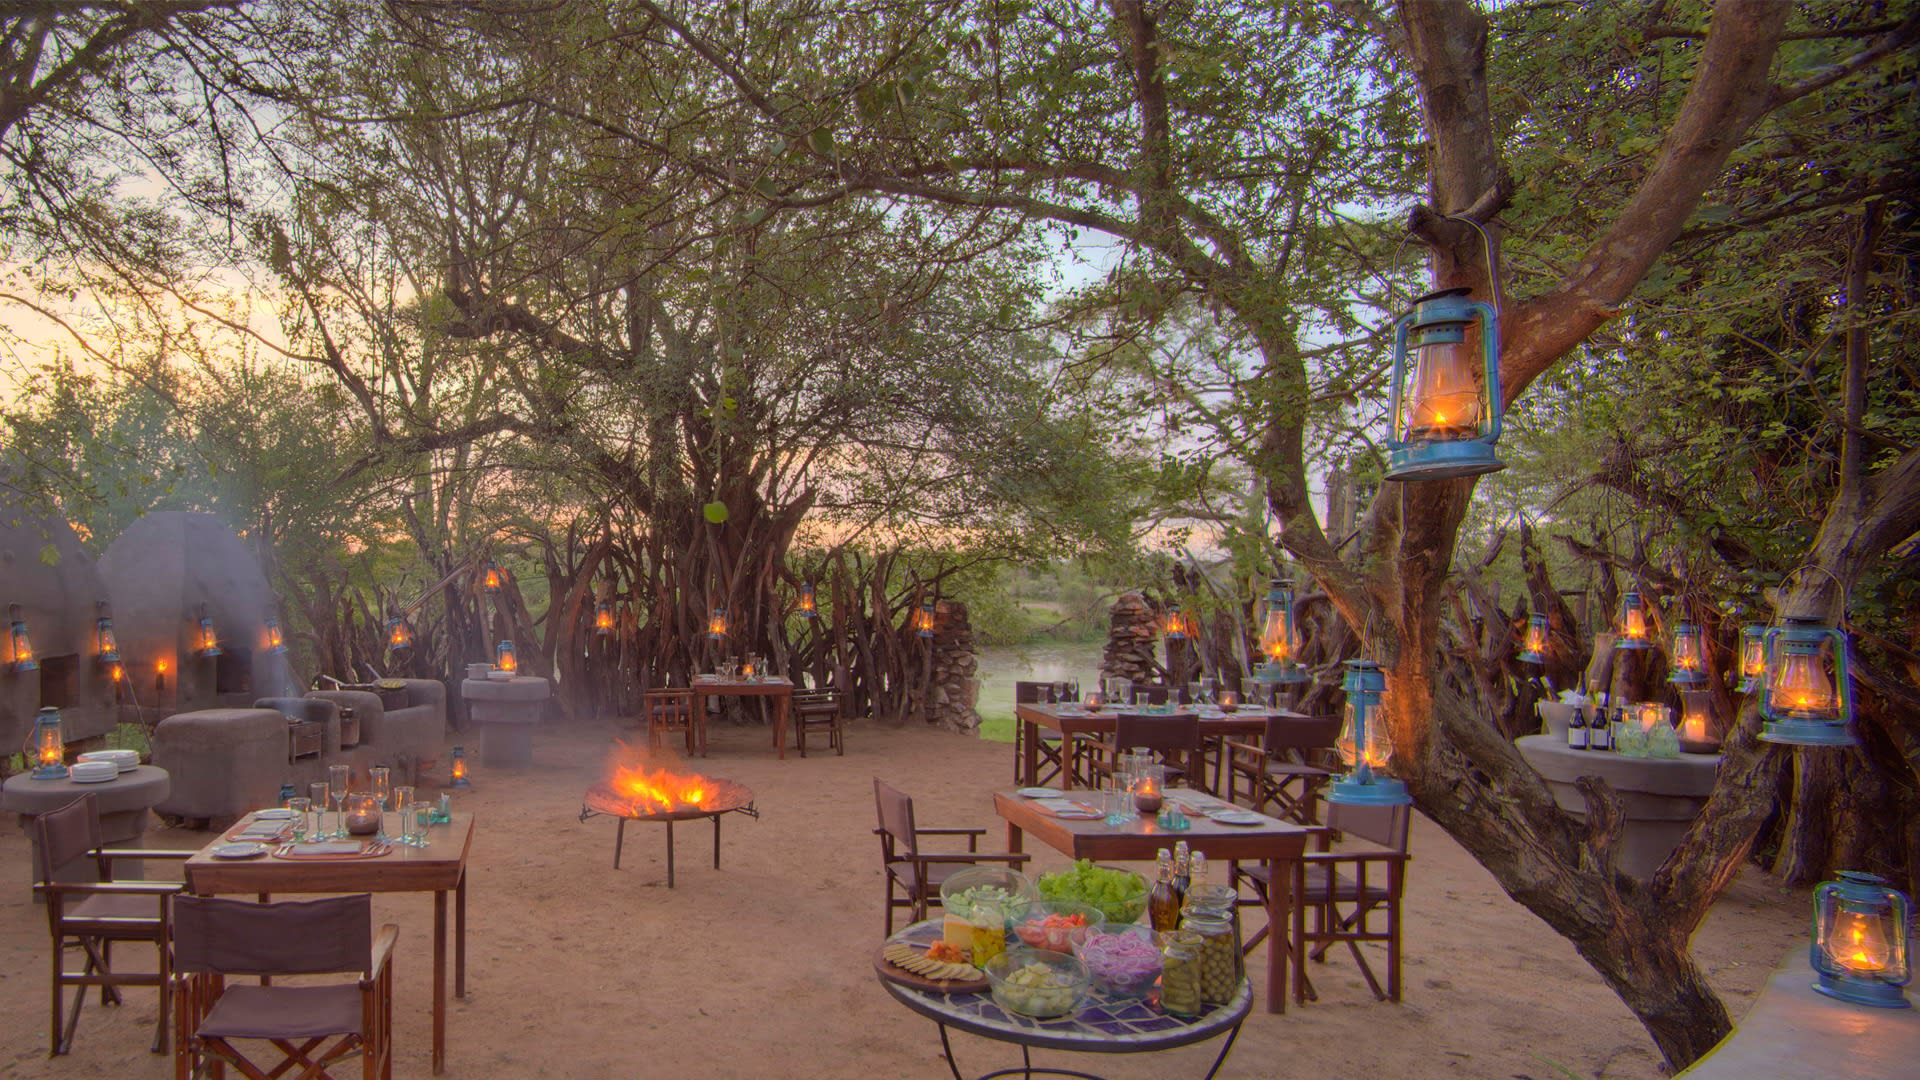 Bush sundowner with lantersn and tables and a firepit